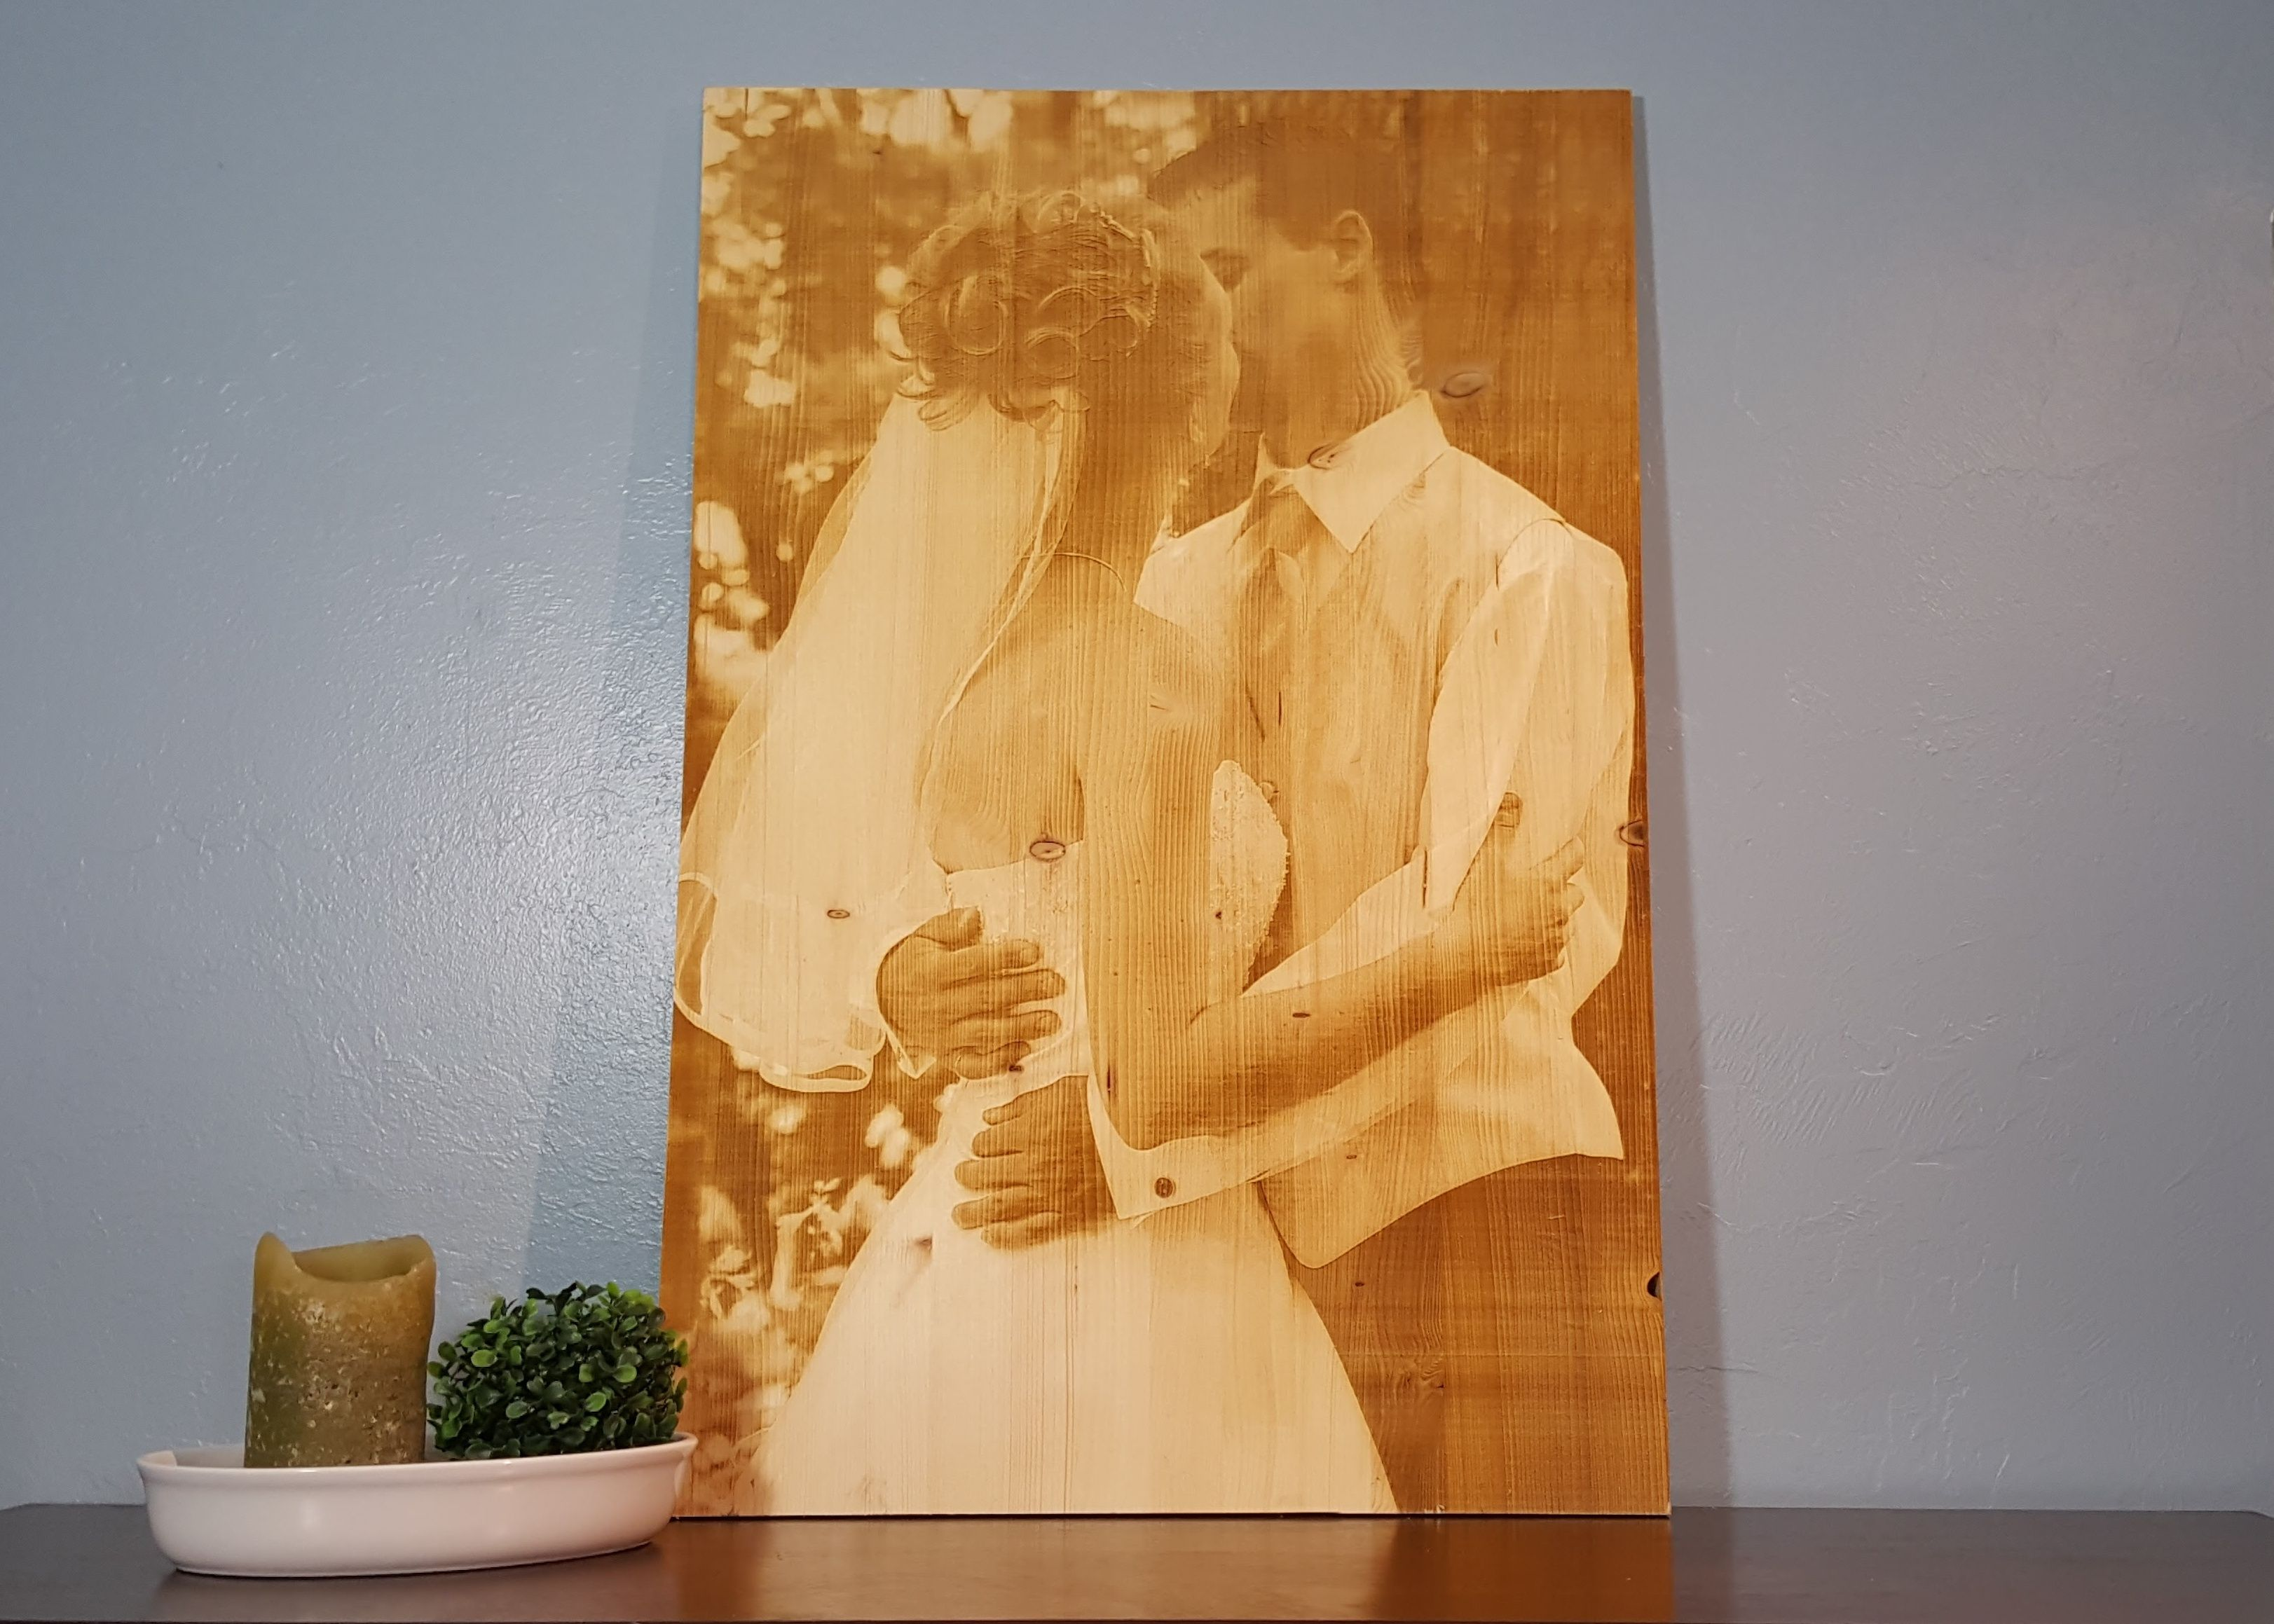 Handmade Wood Engraved Photo by Spectrum Designs | CustomMade.com